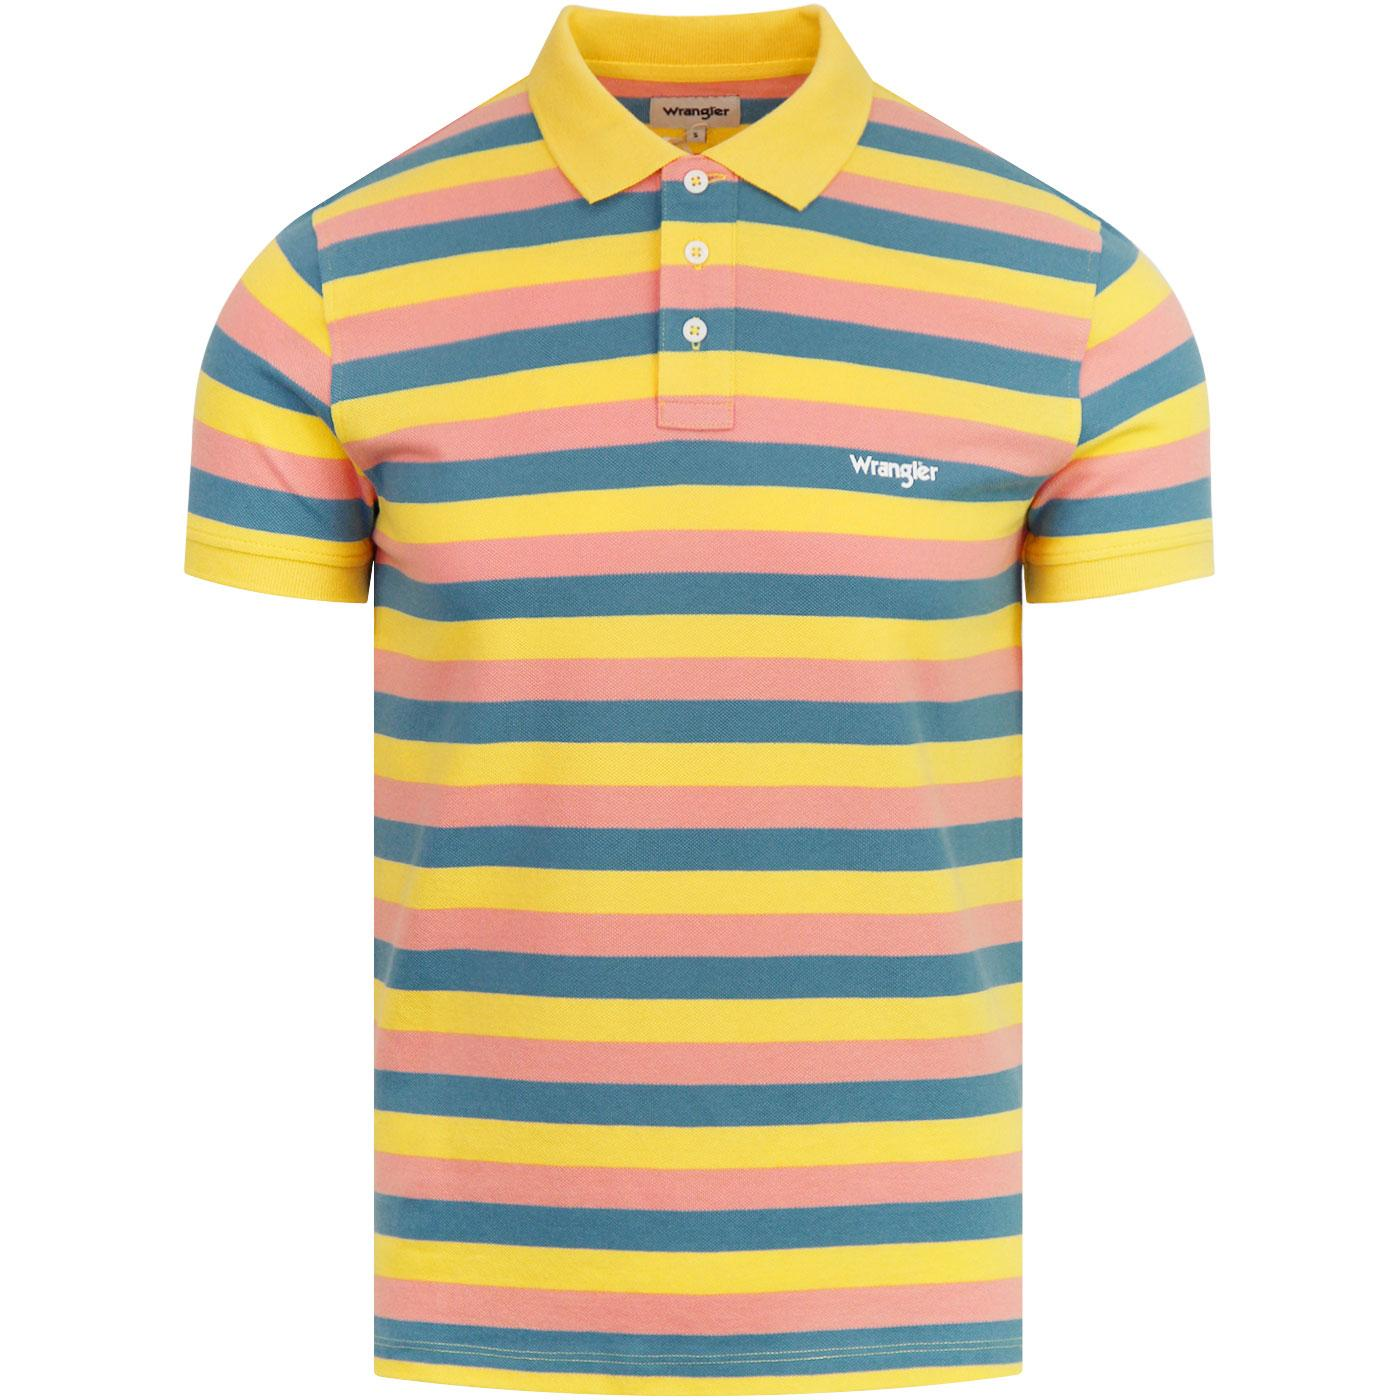 WRANGLER Retro 70s Summer Stripe Polo Shirt (GY)